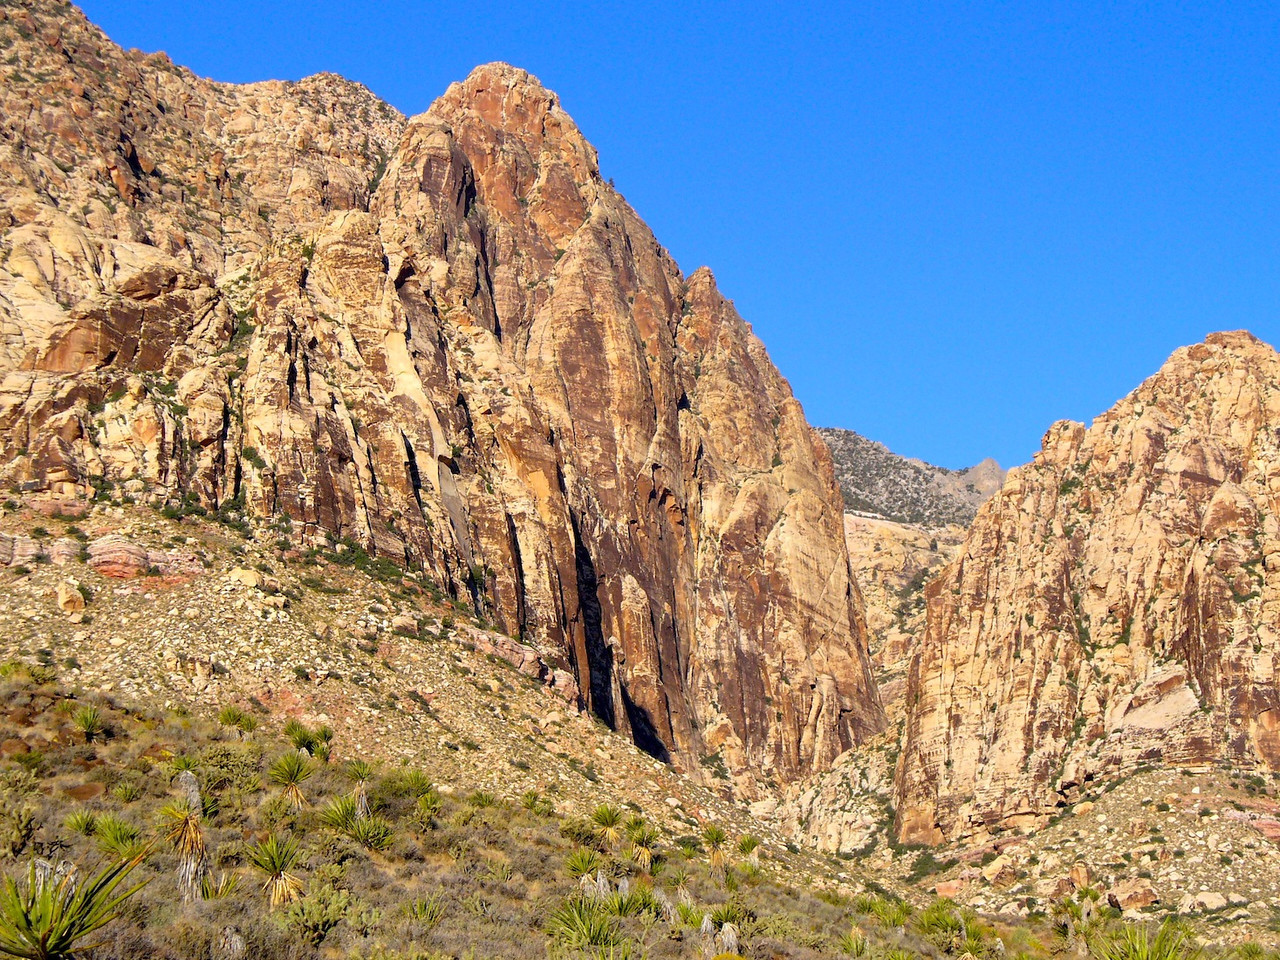 Nearing the canyon, with BV Wall now in view